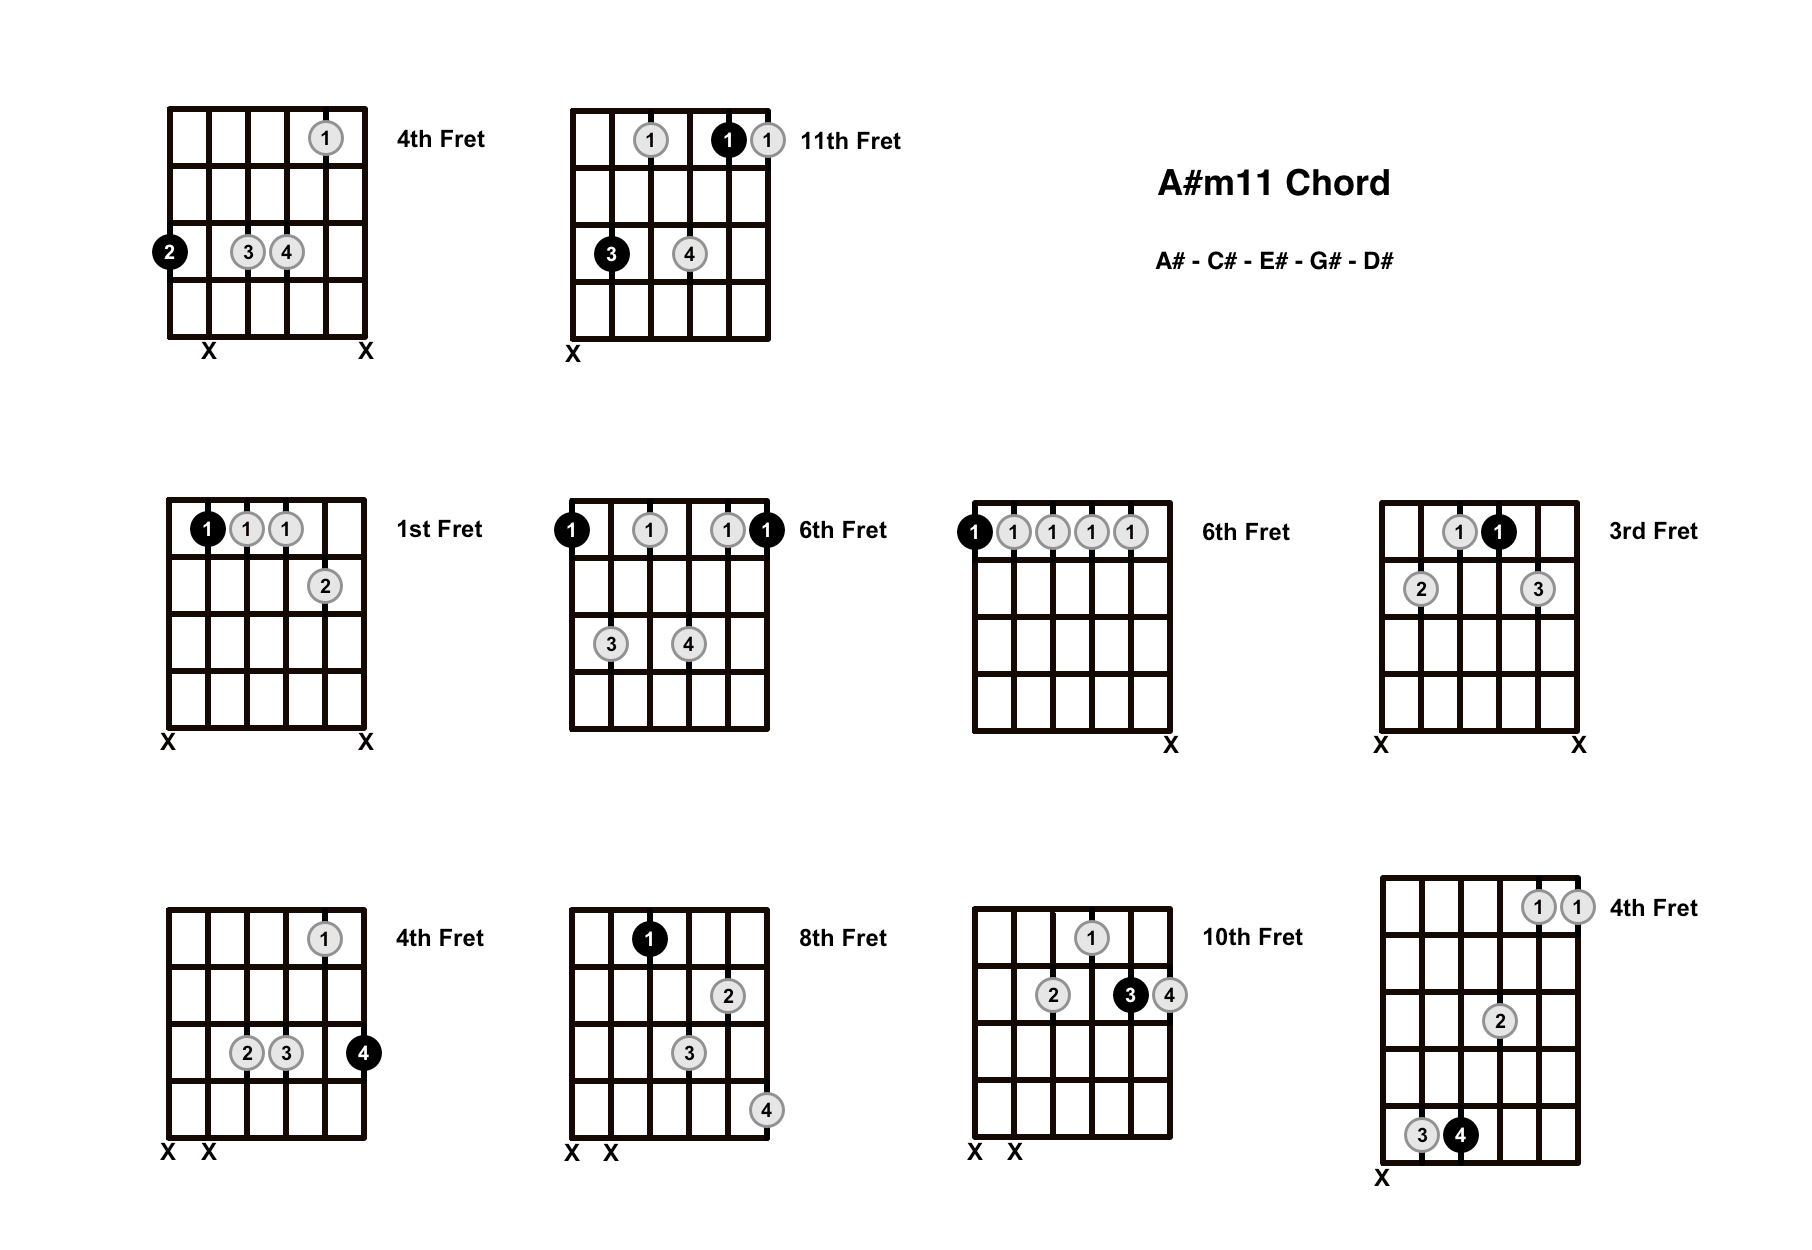 A#m11 Chord On The Guitar (A Sharp minor 11) – Diagrams, Finger Positions and Theory